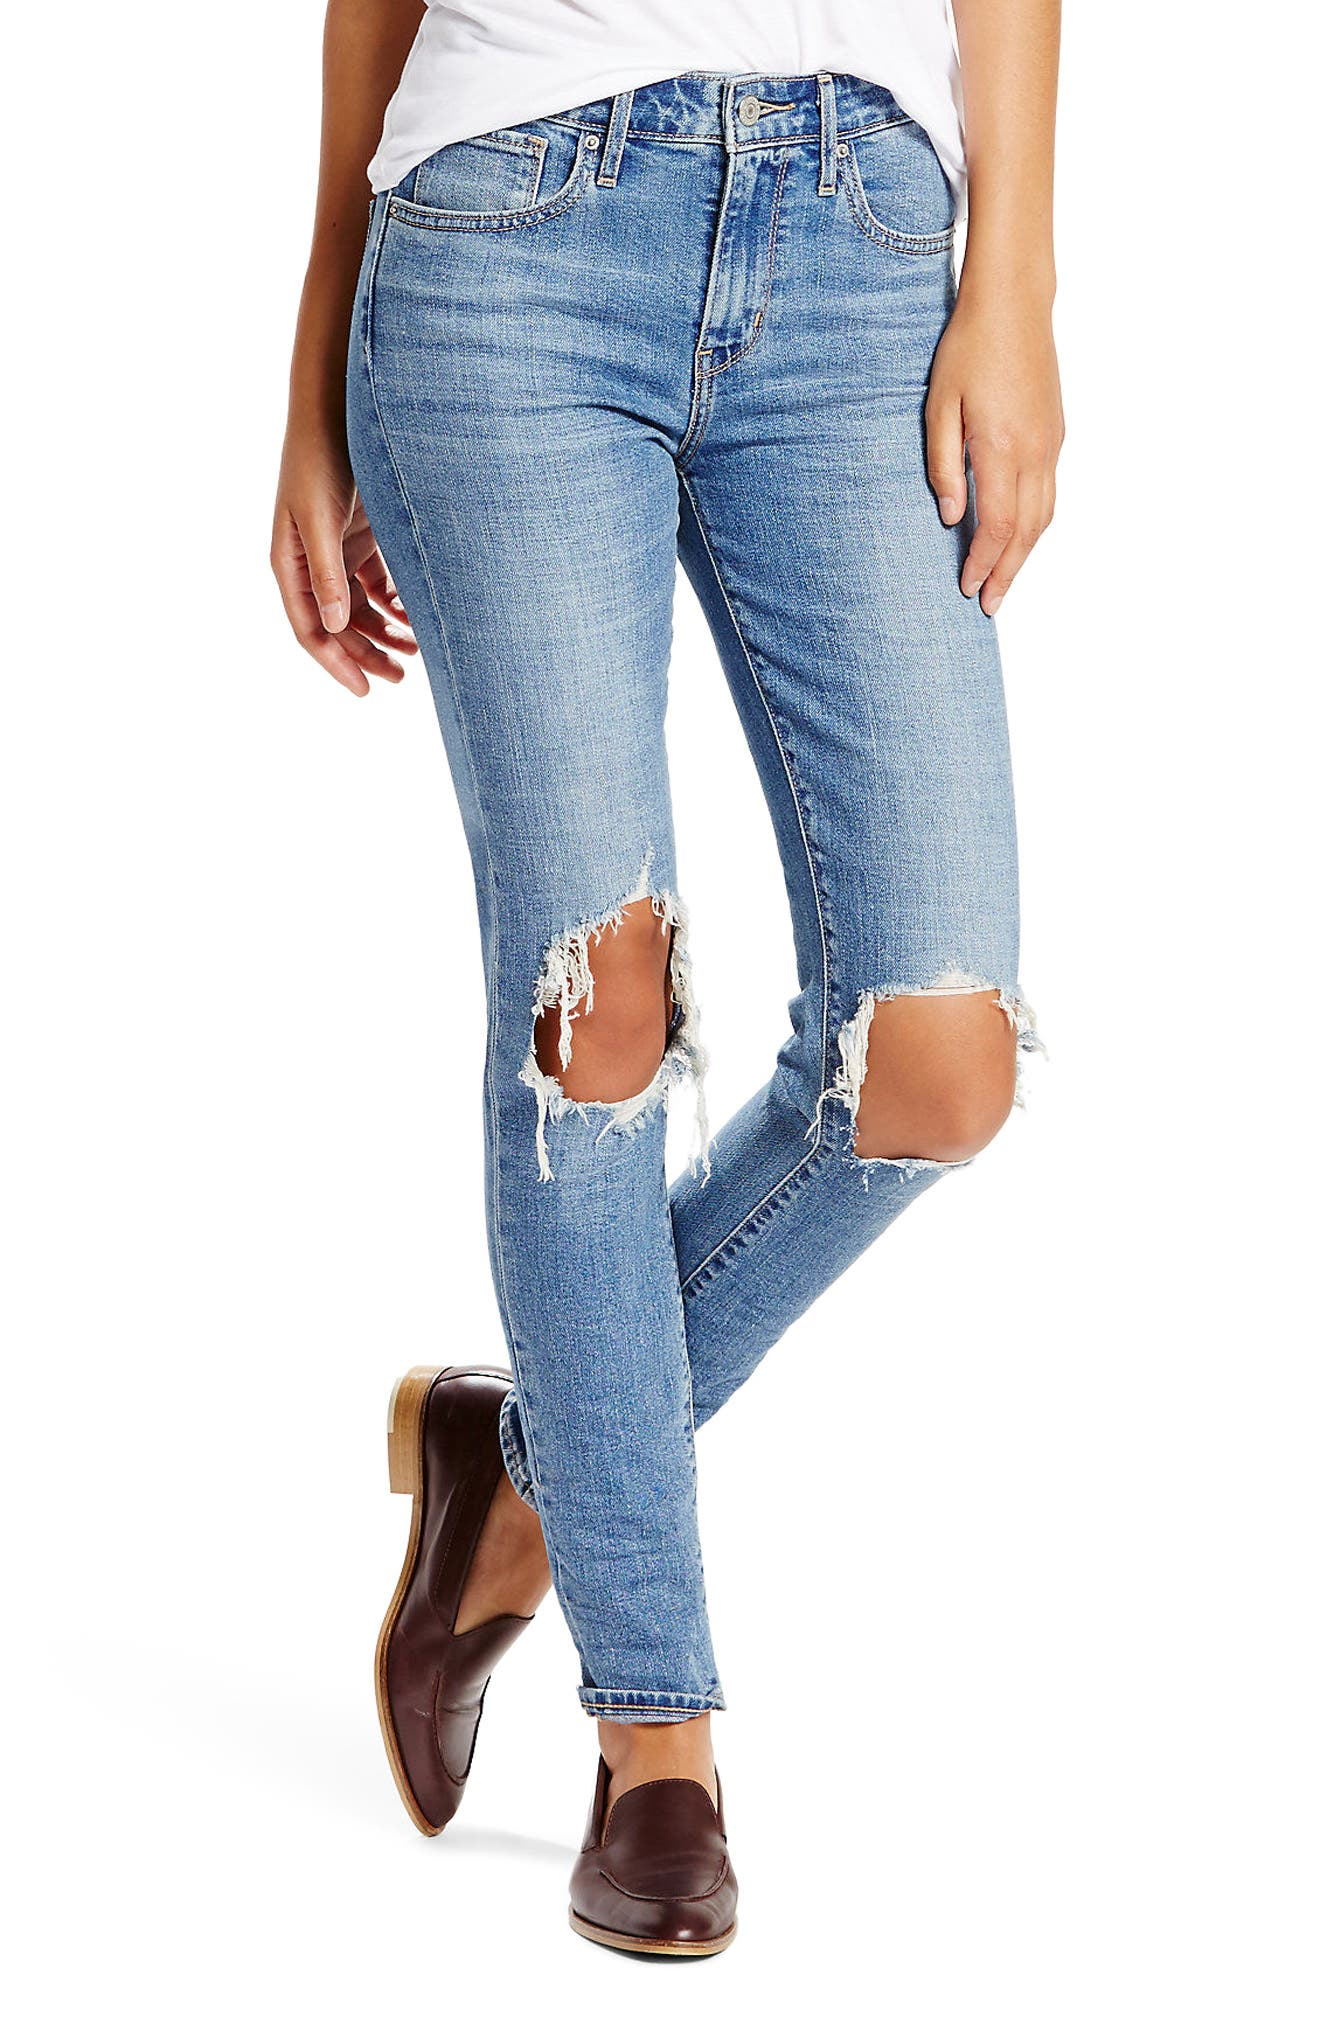 721 Ripped High Waist Skinny Jeans,                         Main,                         color, Rugged Indigo